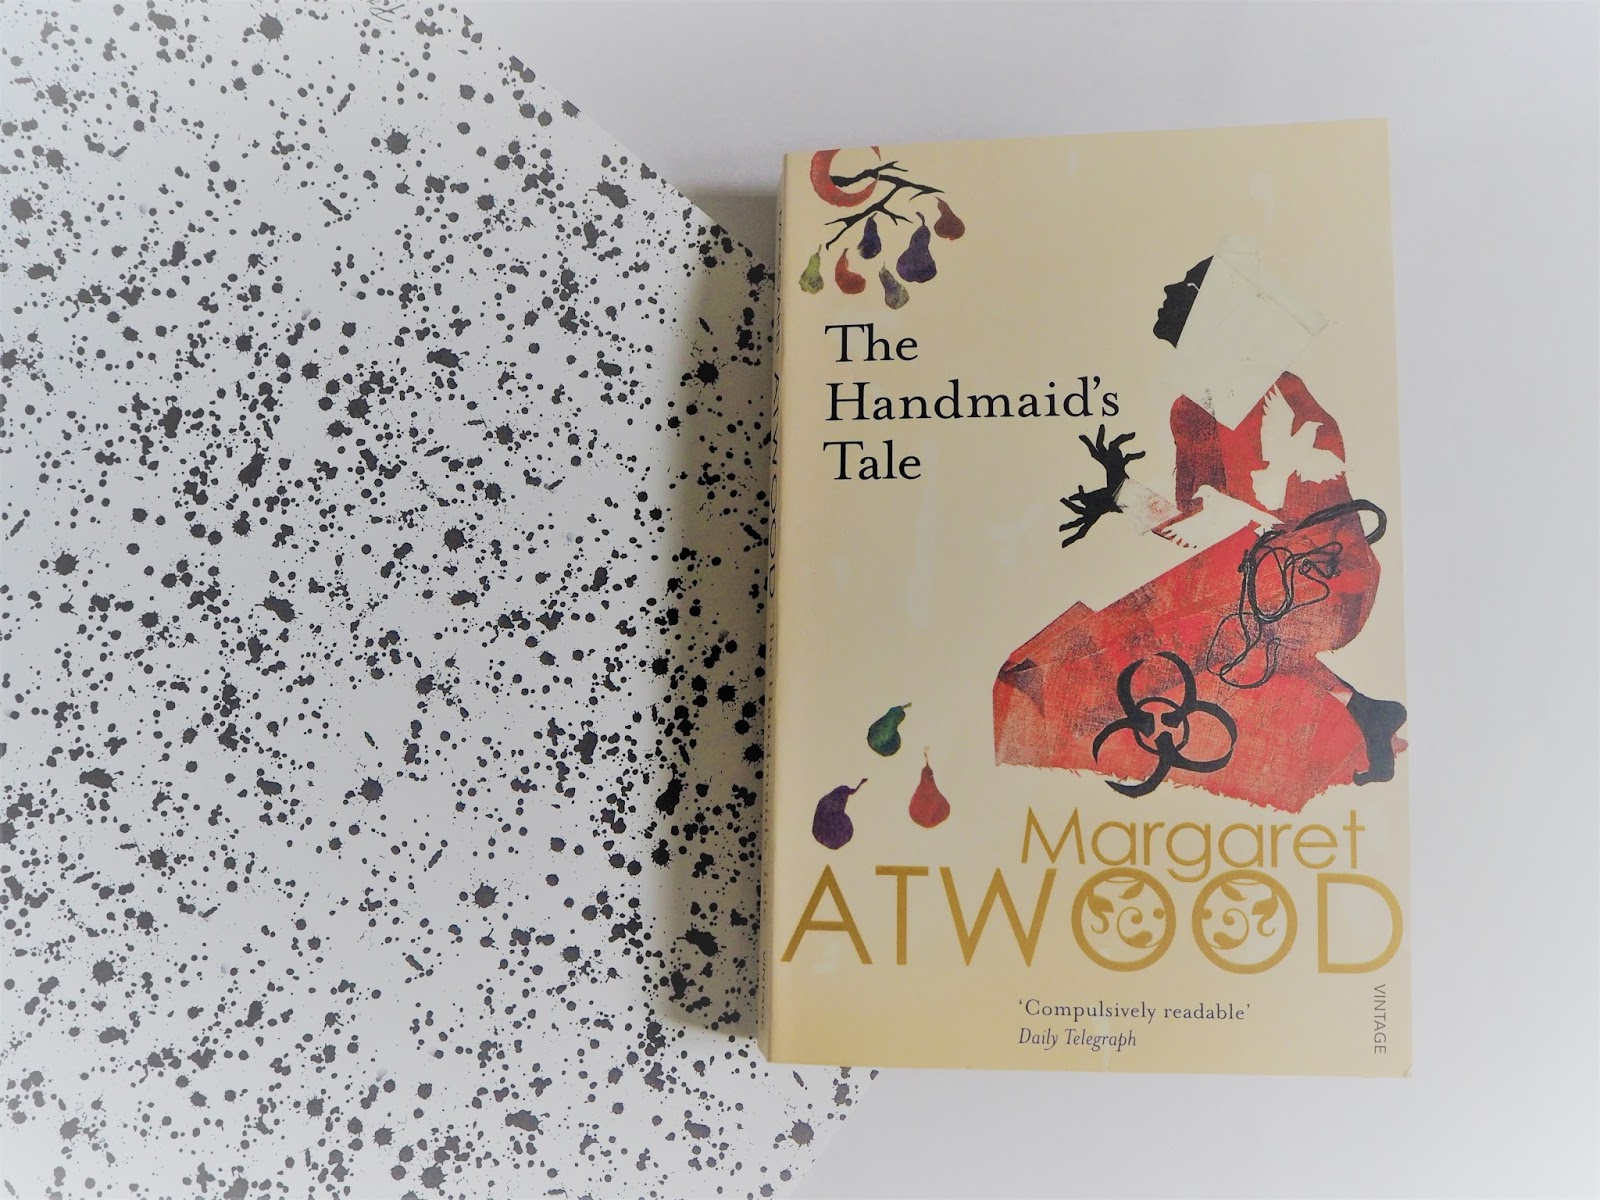 A review of The Handmaid's Tale by Margaret Atwood